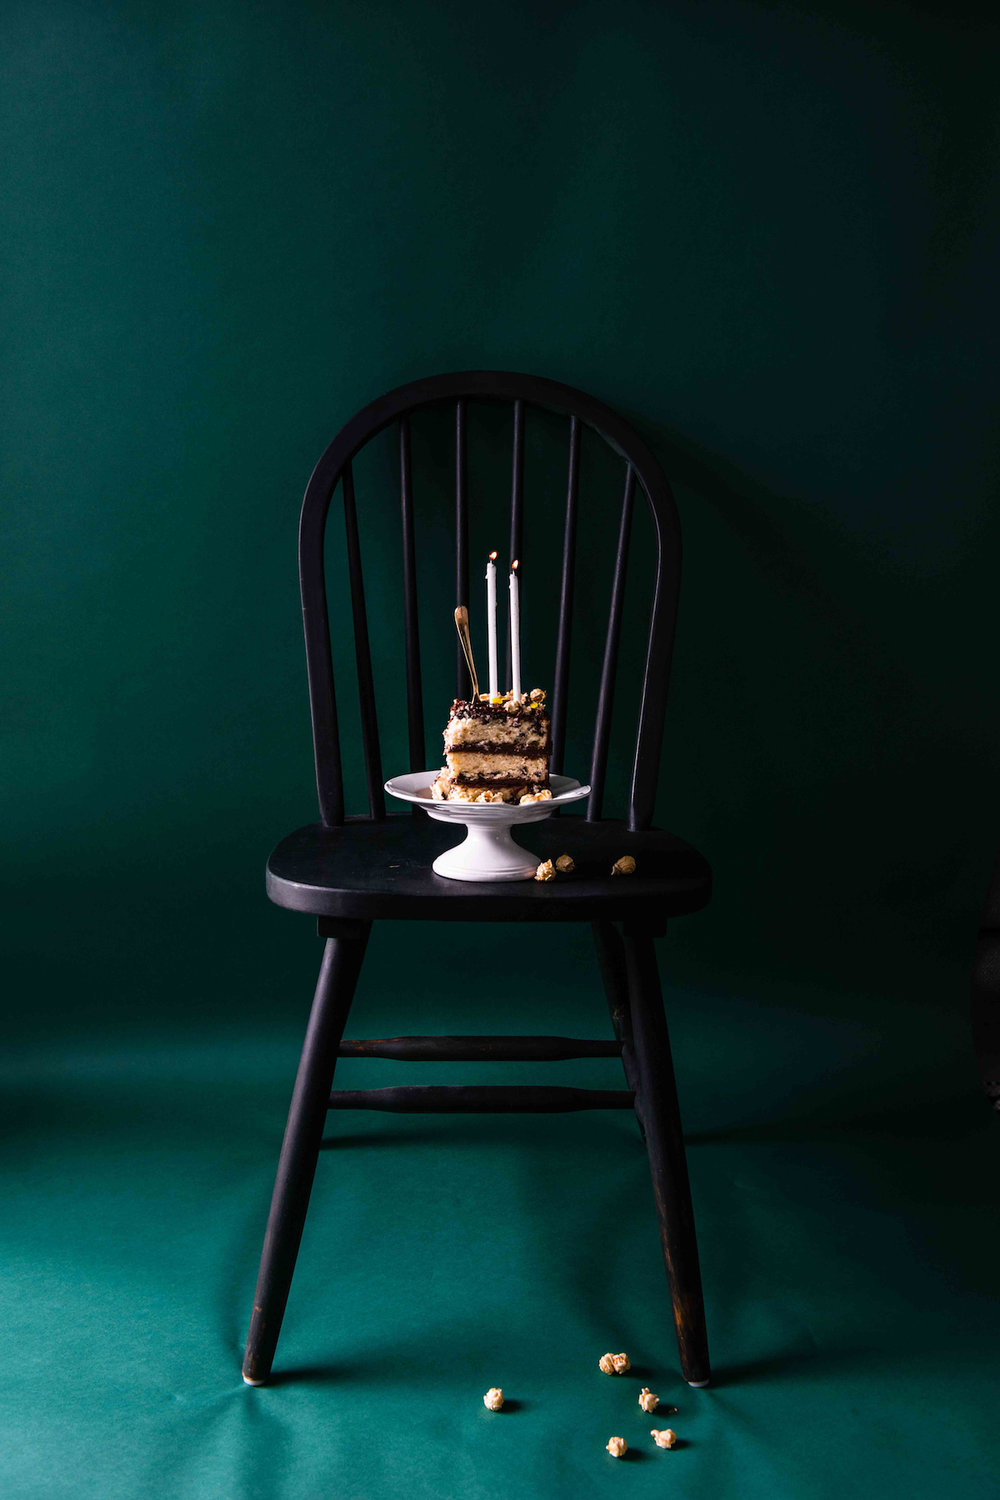 Cake and chair low res.jpg